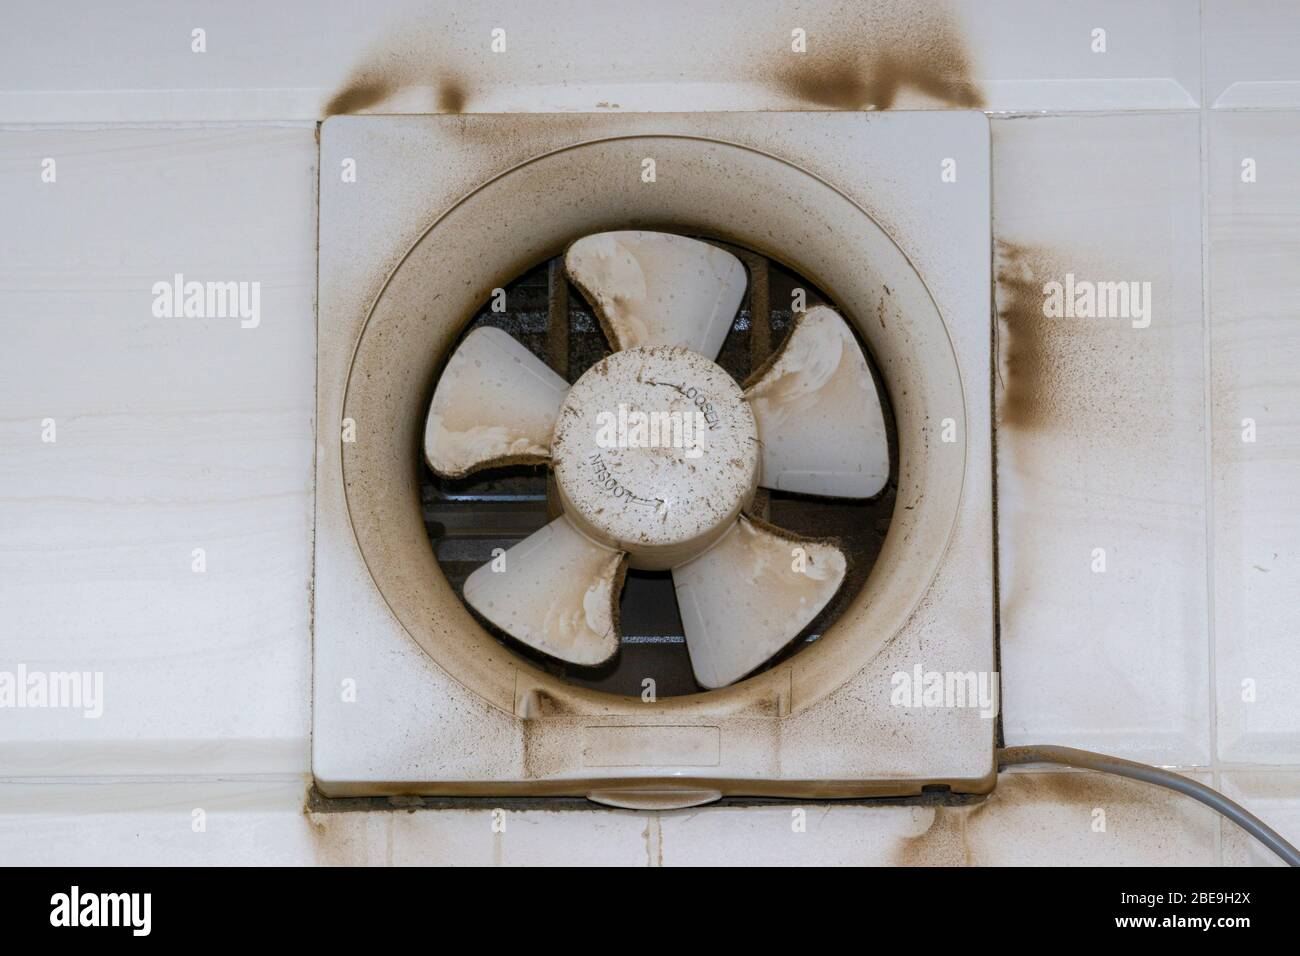 https www alamy com exhaust air blower fan exhaust fan or exhaust kitchen ventilator with dirty dust closeup selective focus image353023522 html